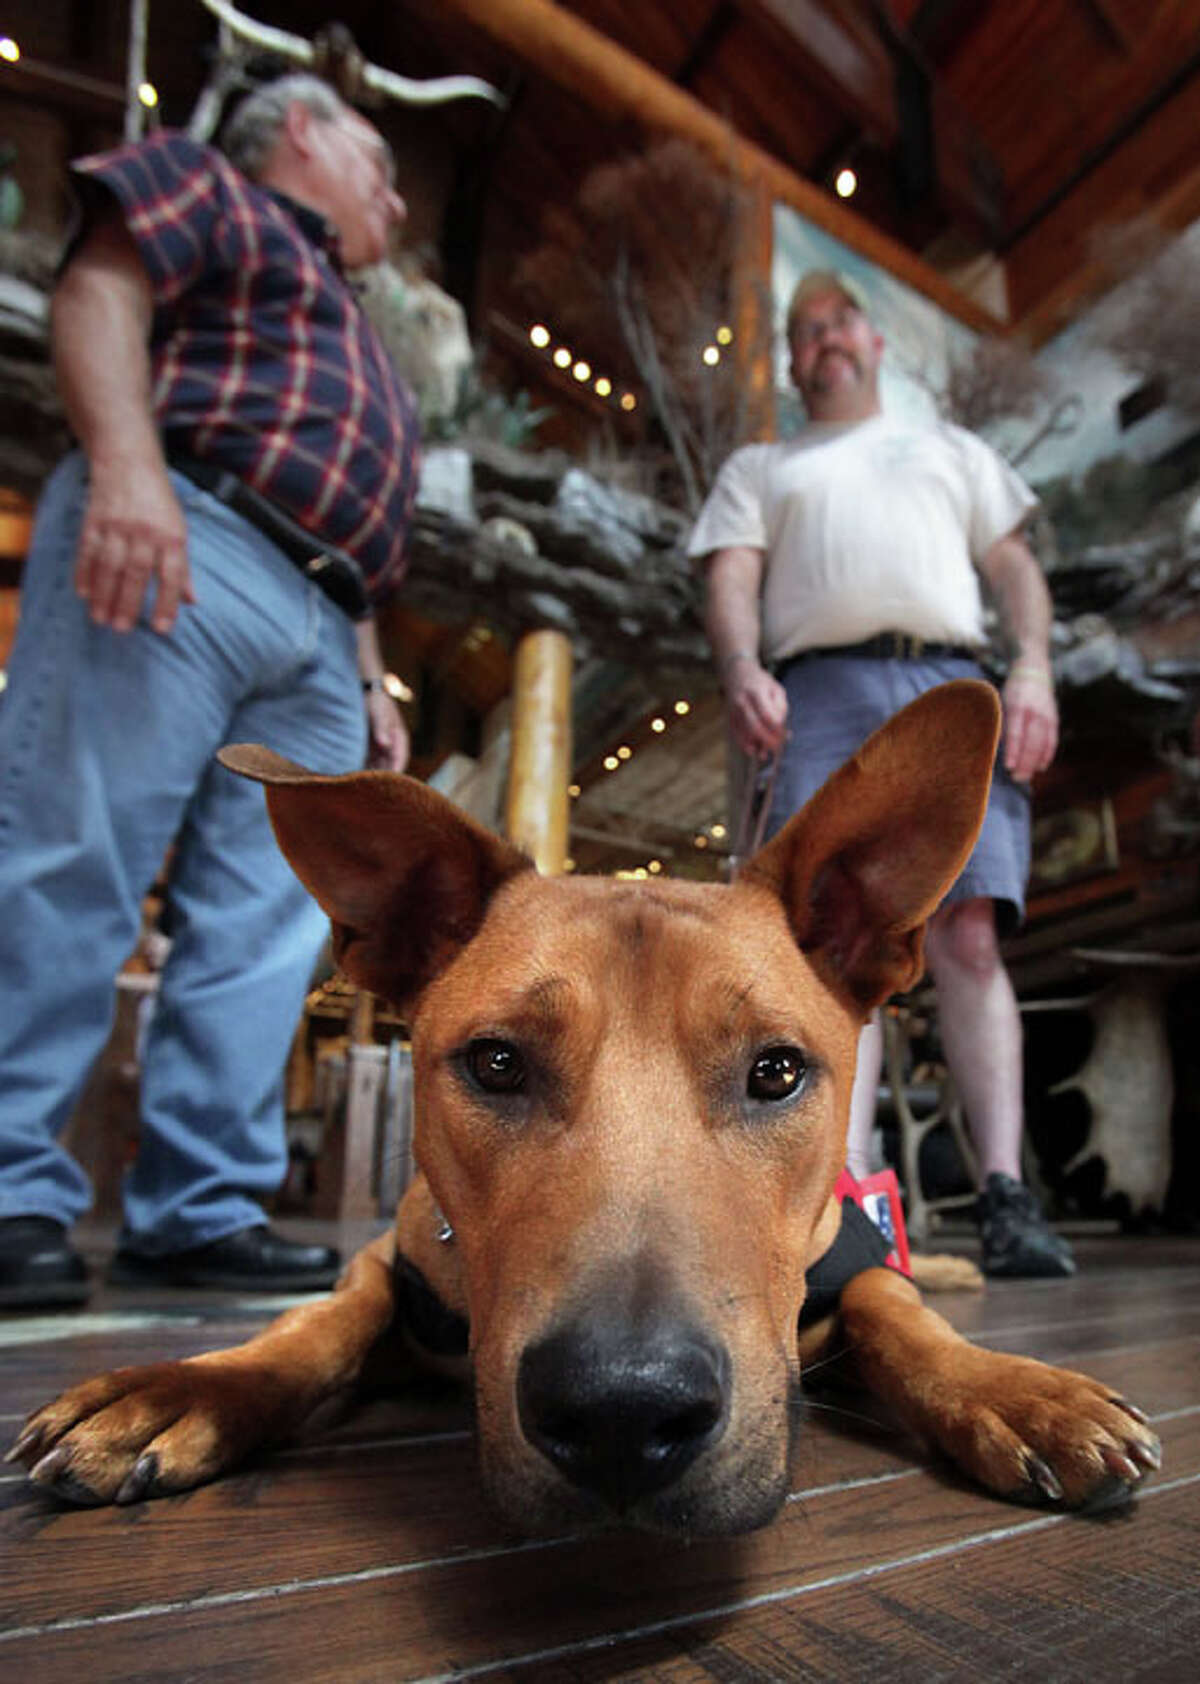 Gunny, a service dog that has been trained to detect potential stressful situations, checks out the camera as he lays on the floor in front of Army Sgt Jeremiah Honaker, left, from TN, who suffers from PTSD. At left is Bart Sherwood, Program Director of Train a Dog, Save a Warrior program. Tuesday, August 9, 2011.